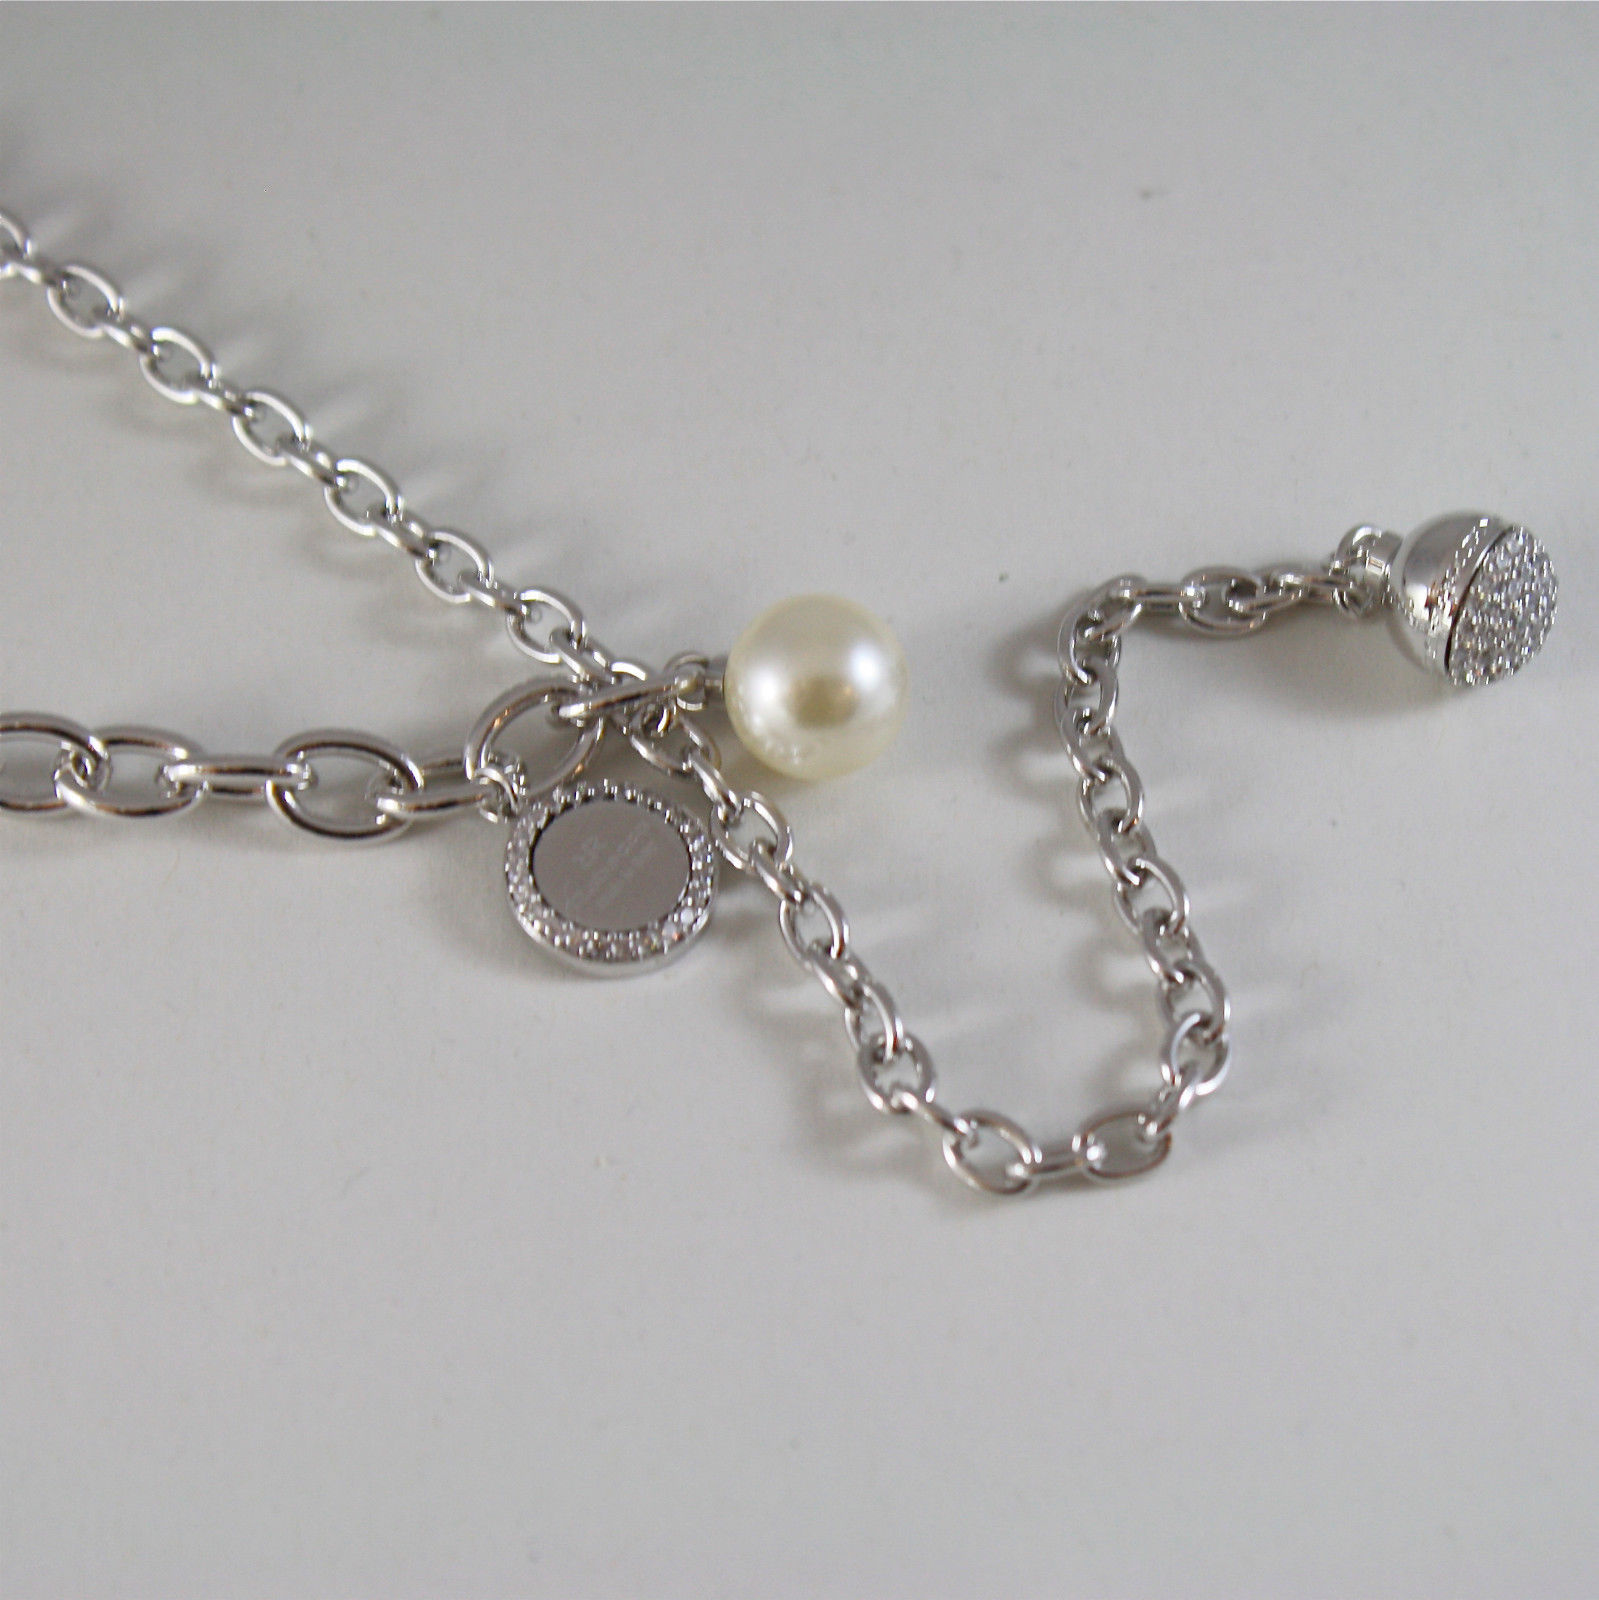 WHITE GOLD PLATED BRONZE REBECCA PEARL NECKLACE HOLLYWOOD BHOKBB24 MADE IN ITALY